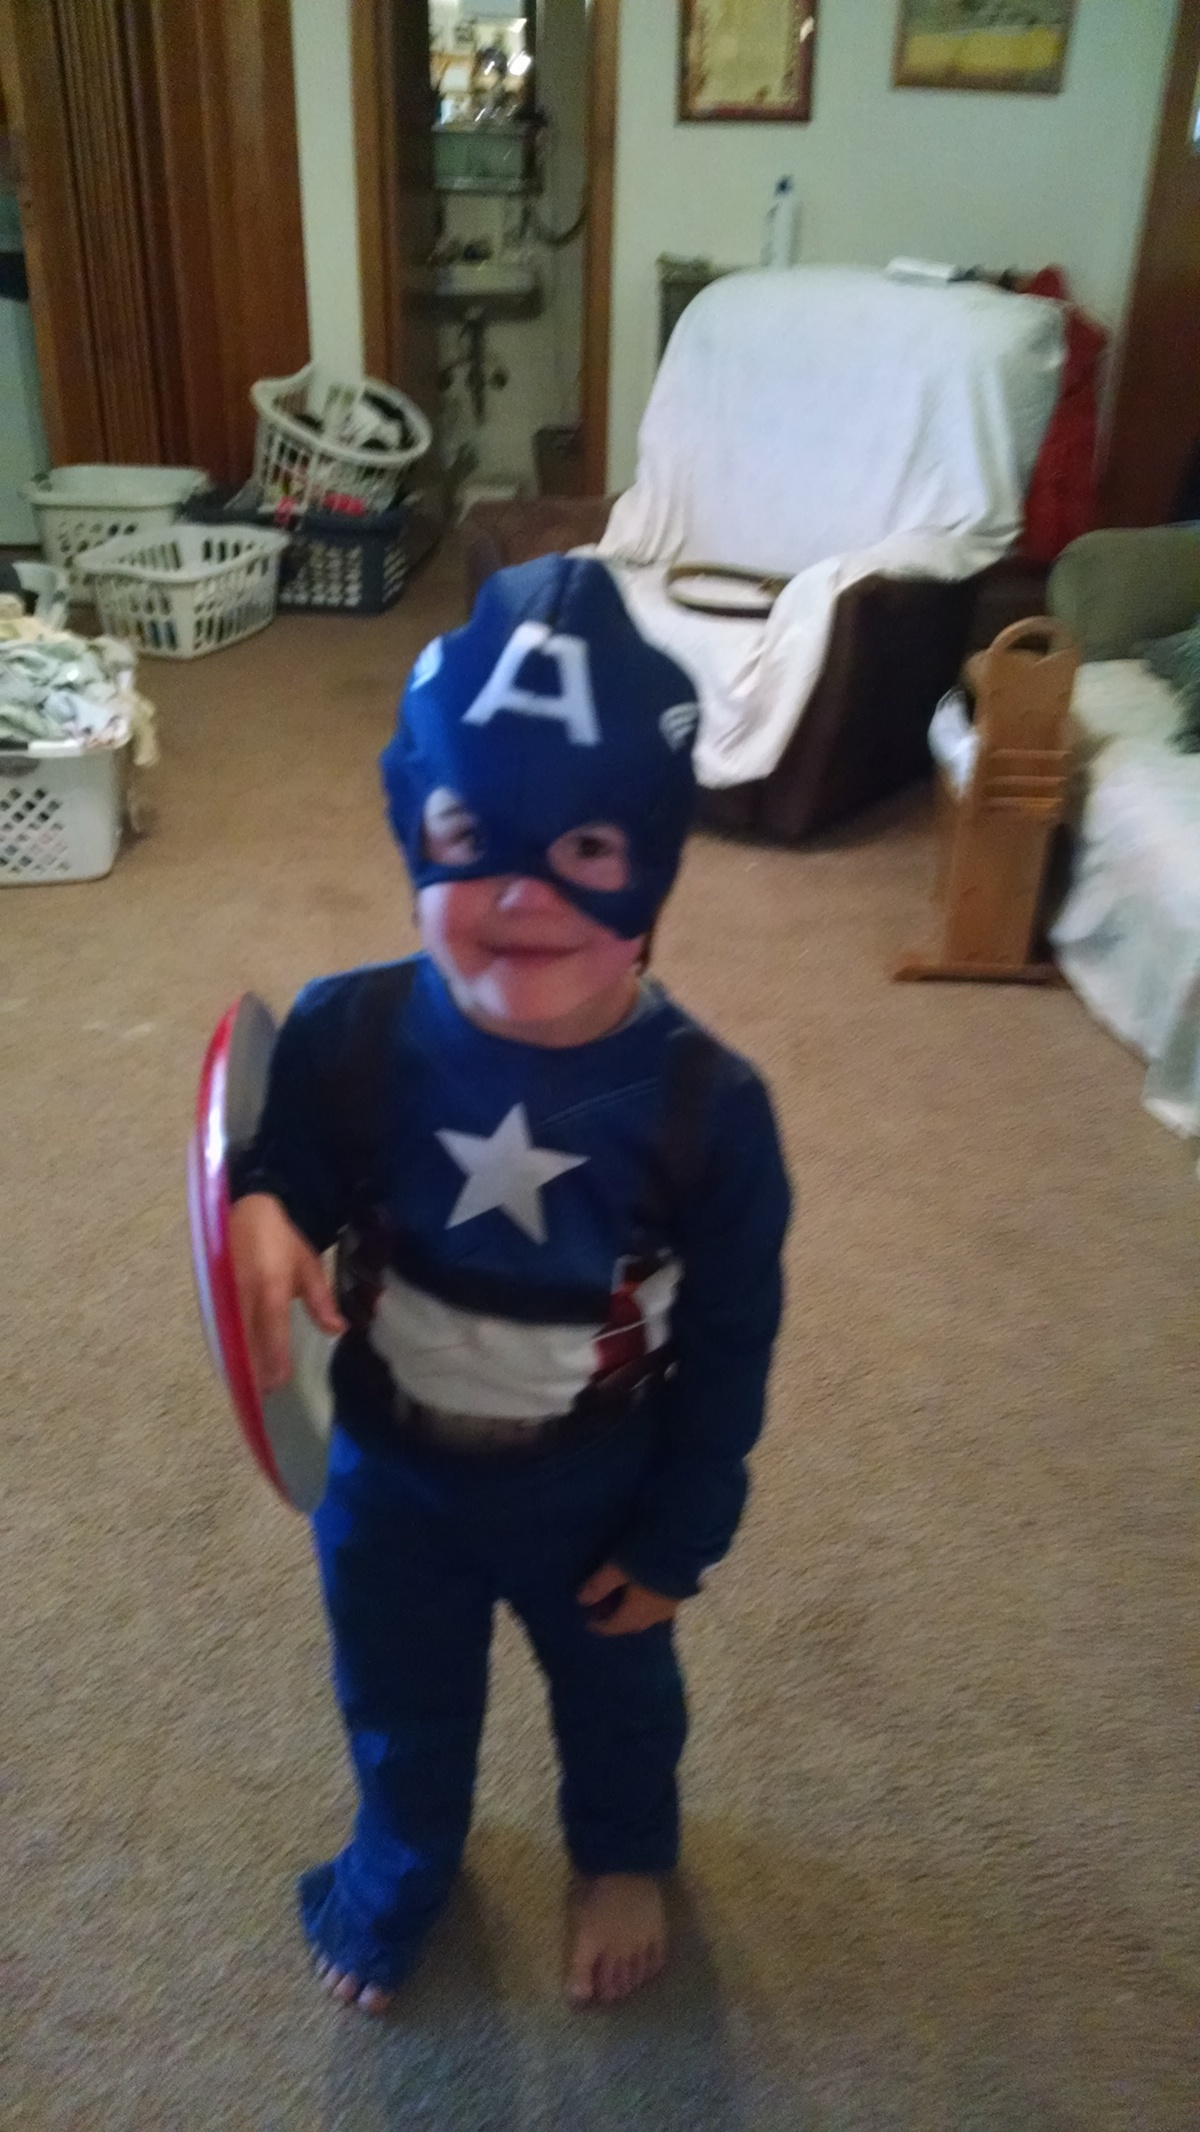 Why I'm Glad My Son Wants to Be a Superhero